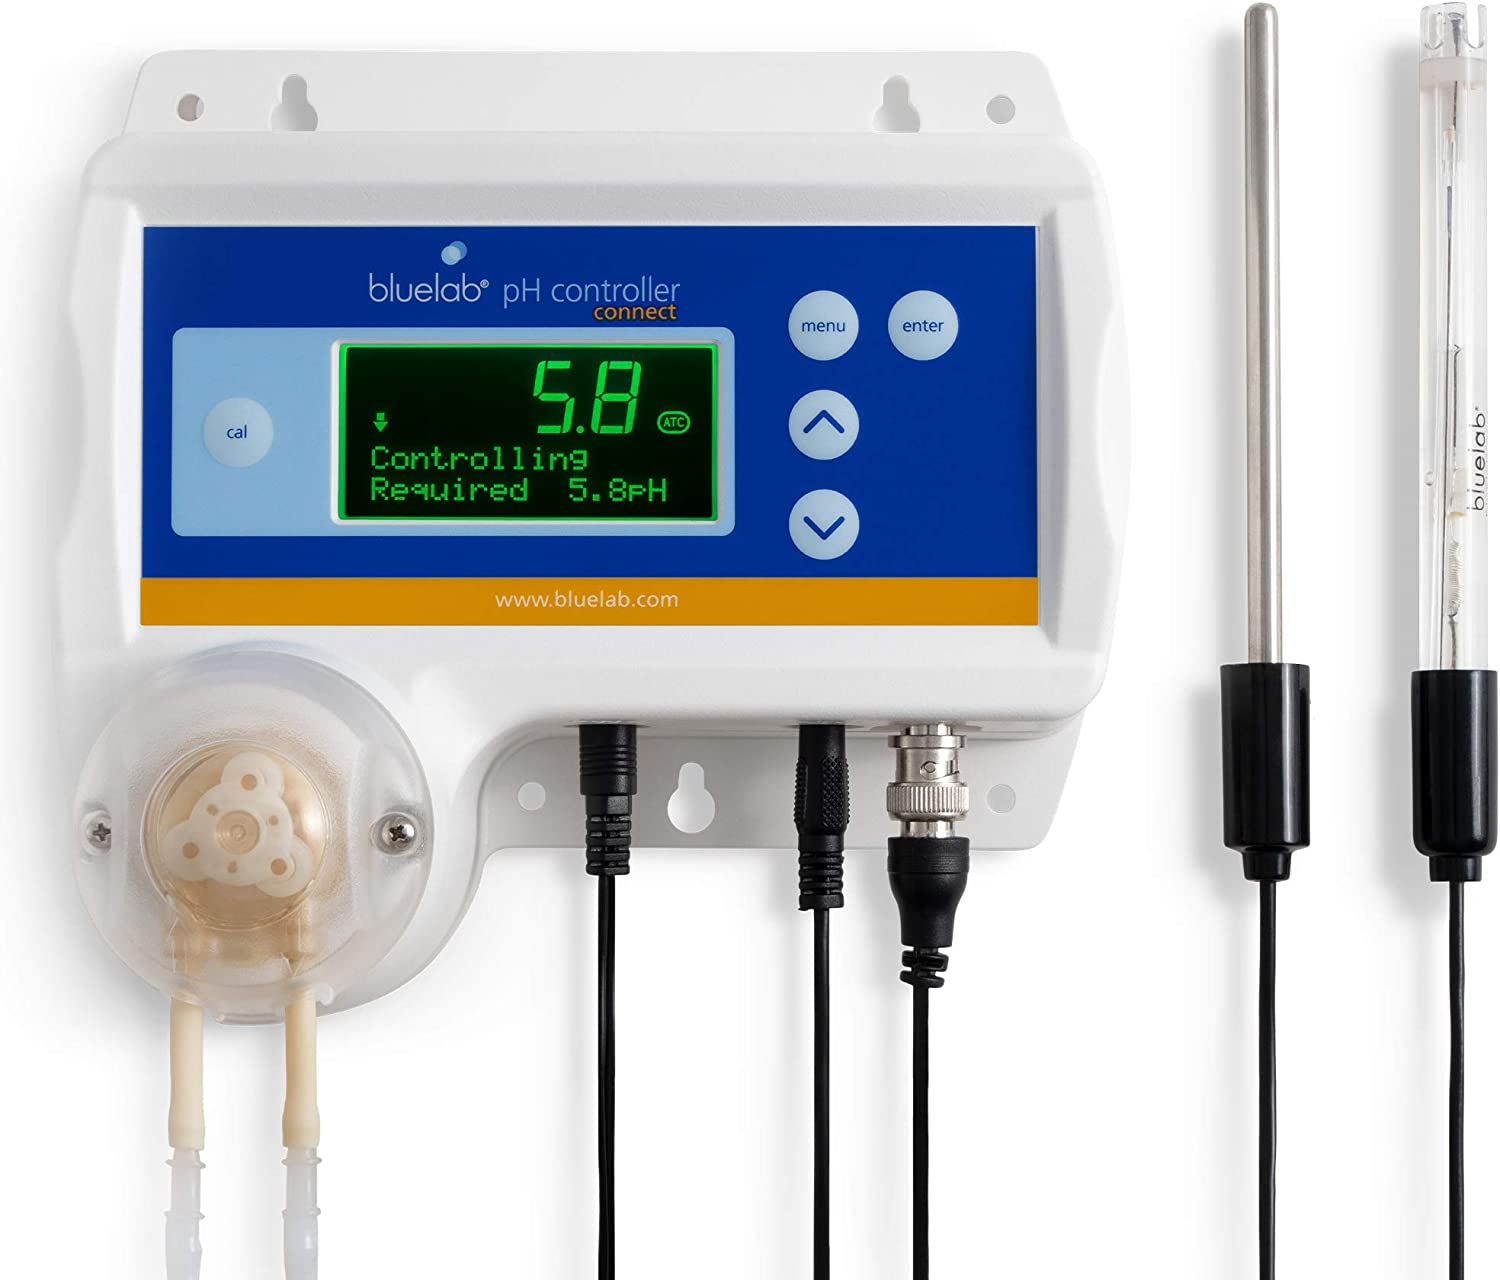 Bluelab CONTPHCON pH Controller Connect with Monitoring, Dosing and Data Logging of Solution pH Levels (Connect Stick not Included)